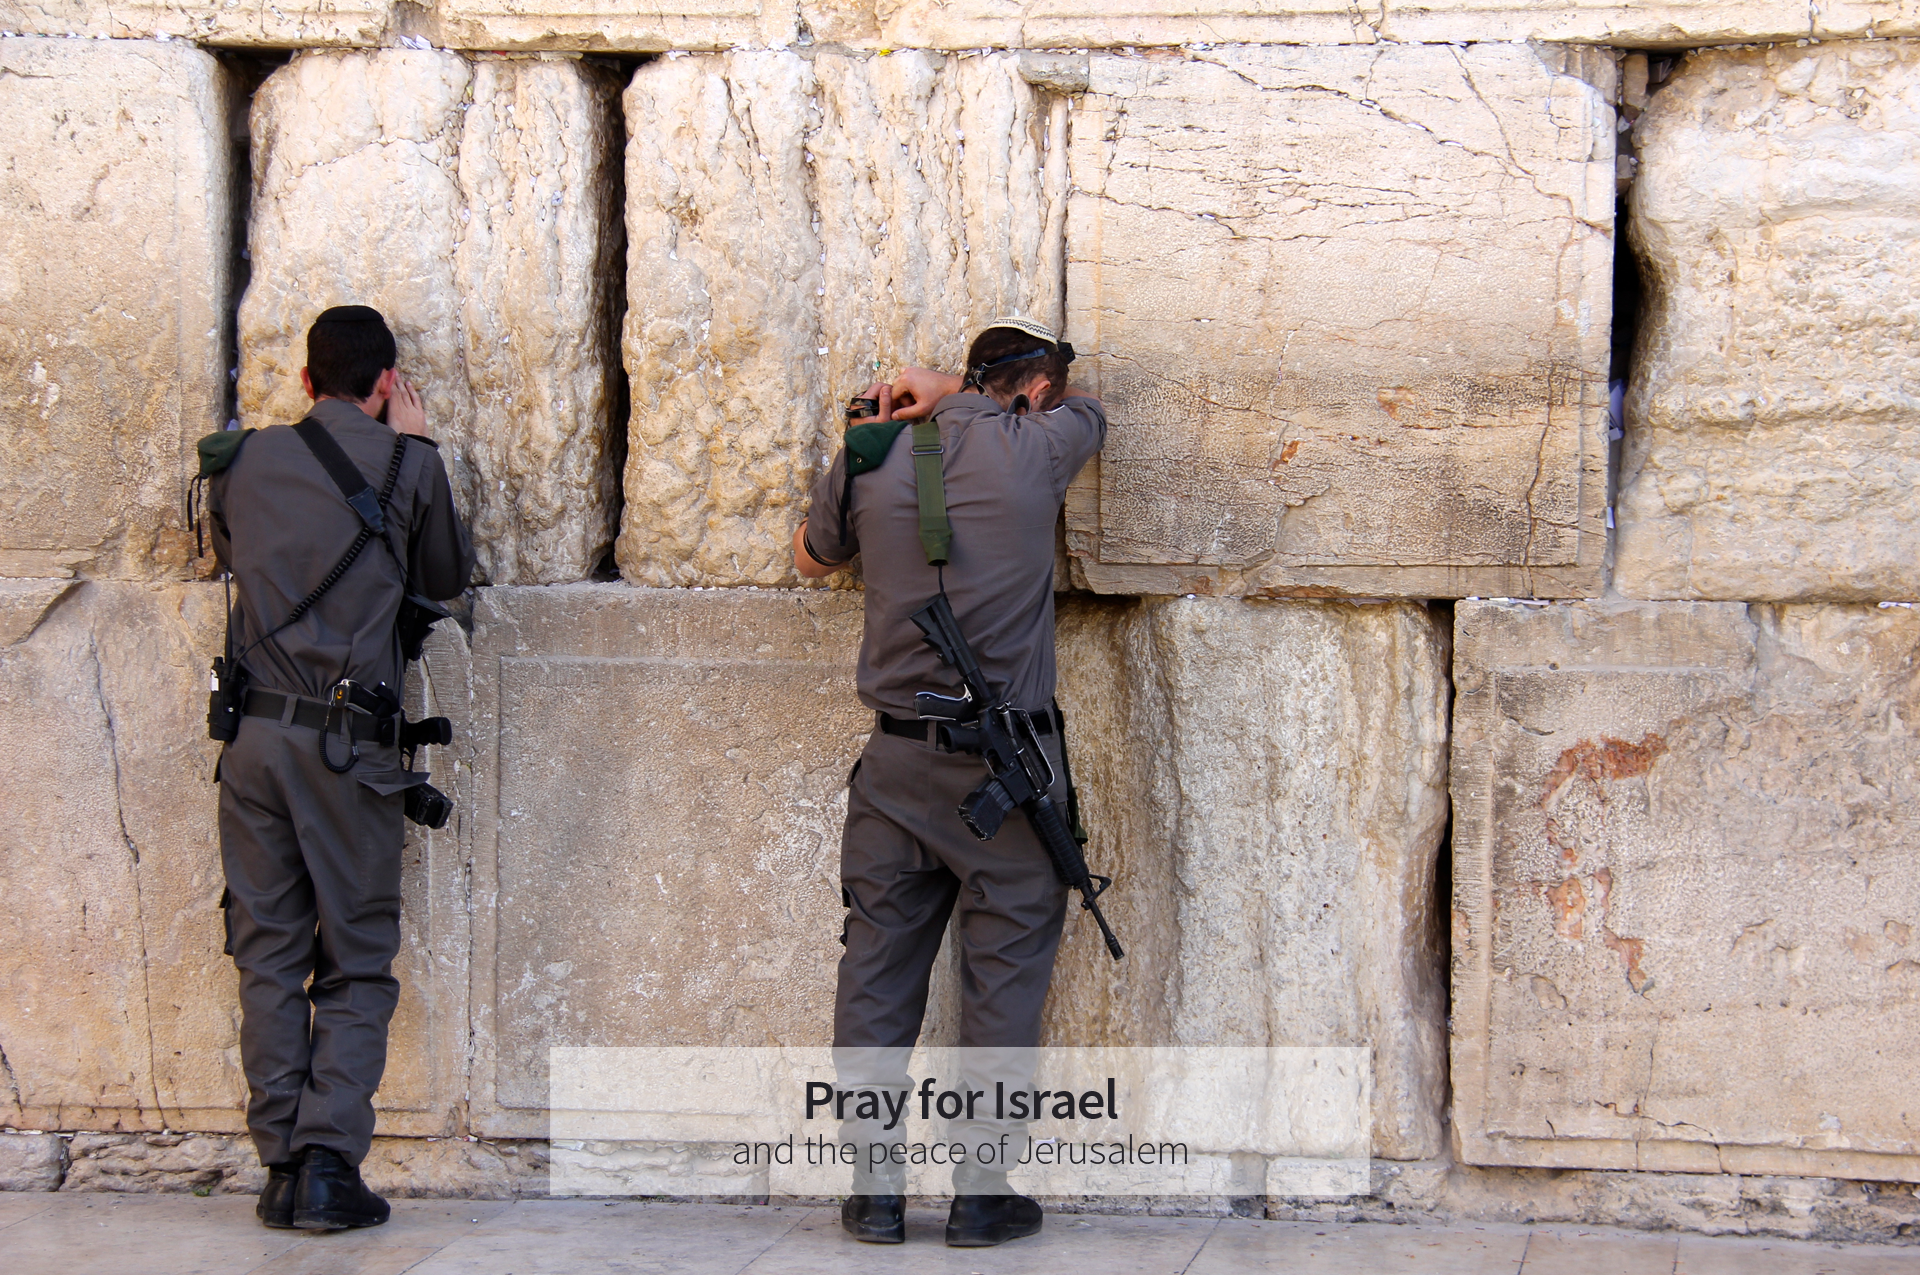 Israeli Soldiers at the Wailing Wall. Pray for Israel and the peace of Jerusalem.